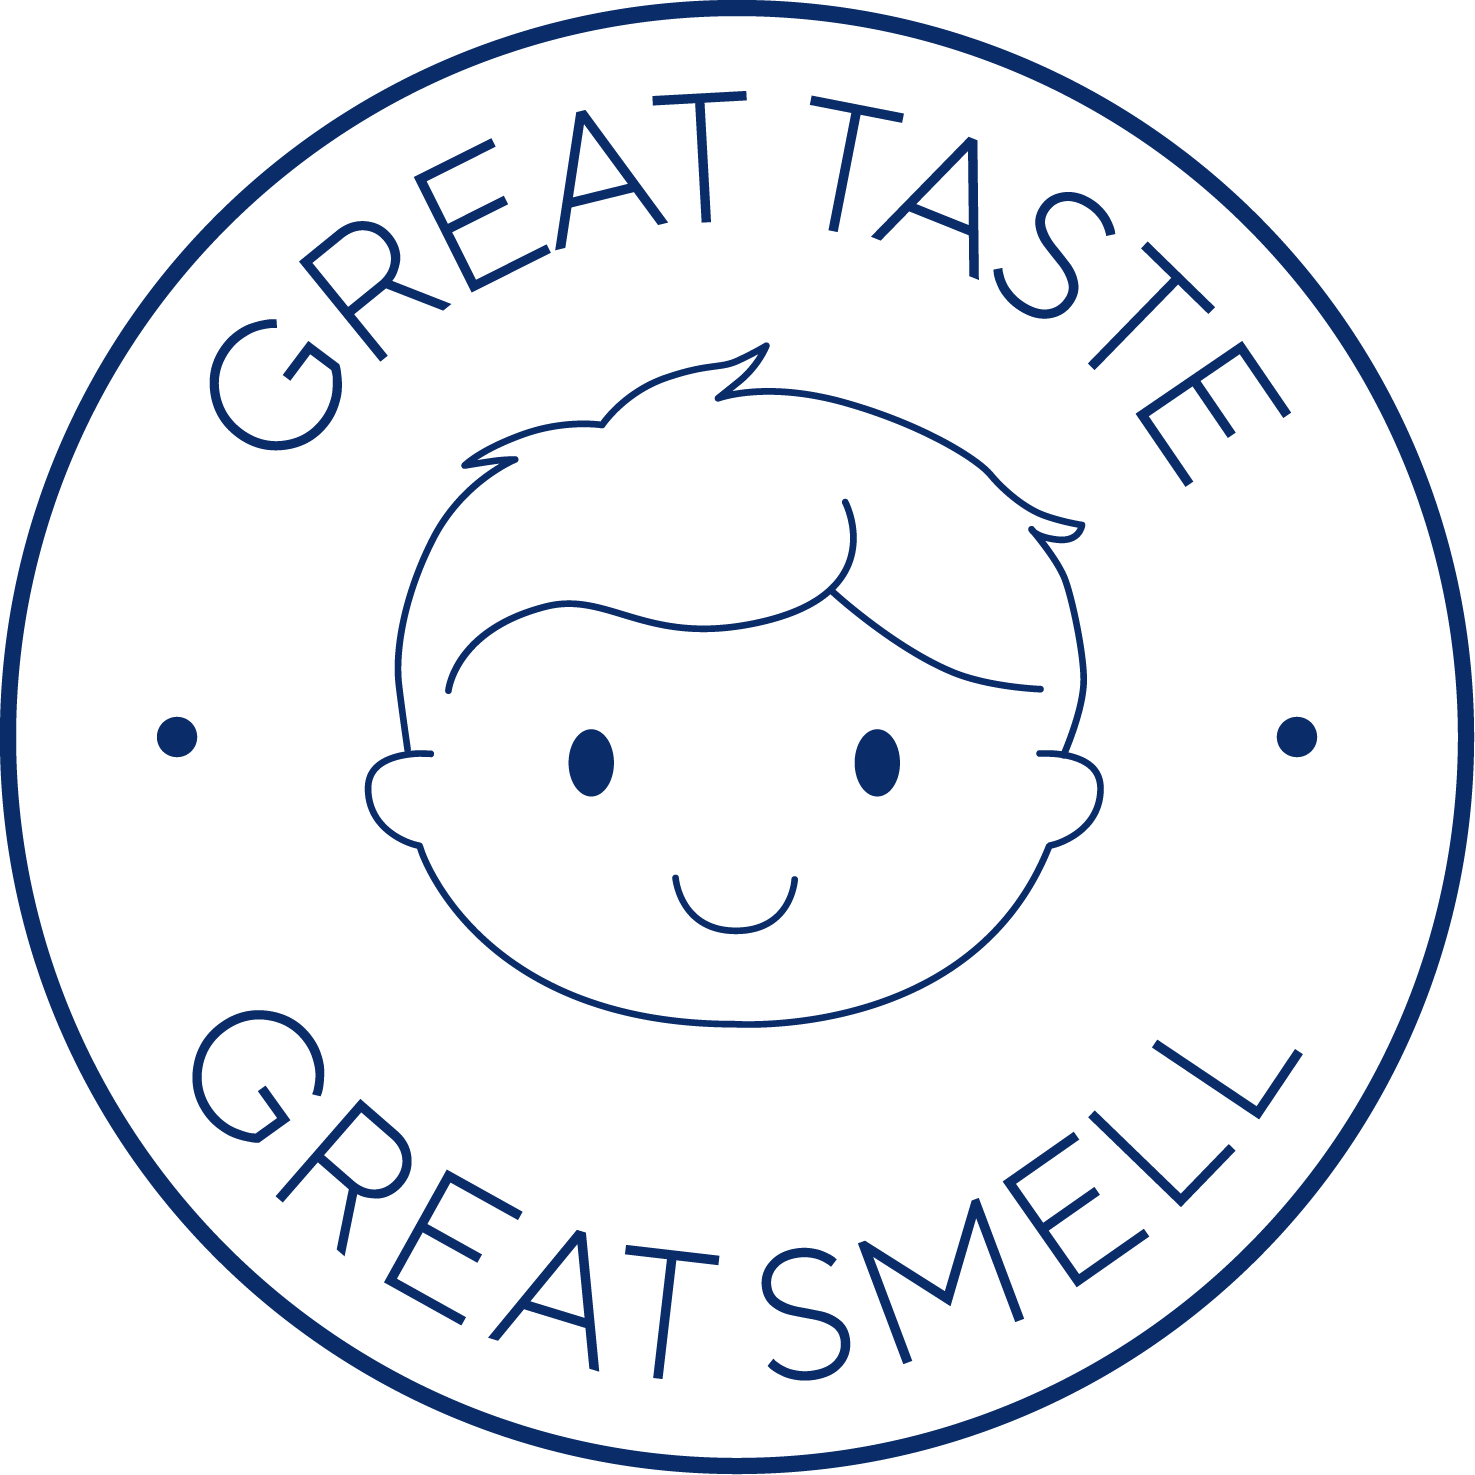 Great taste and smell